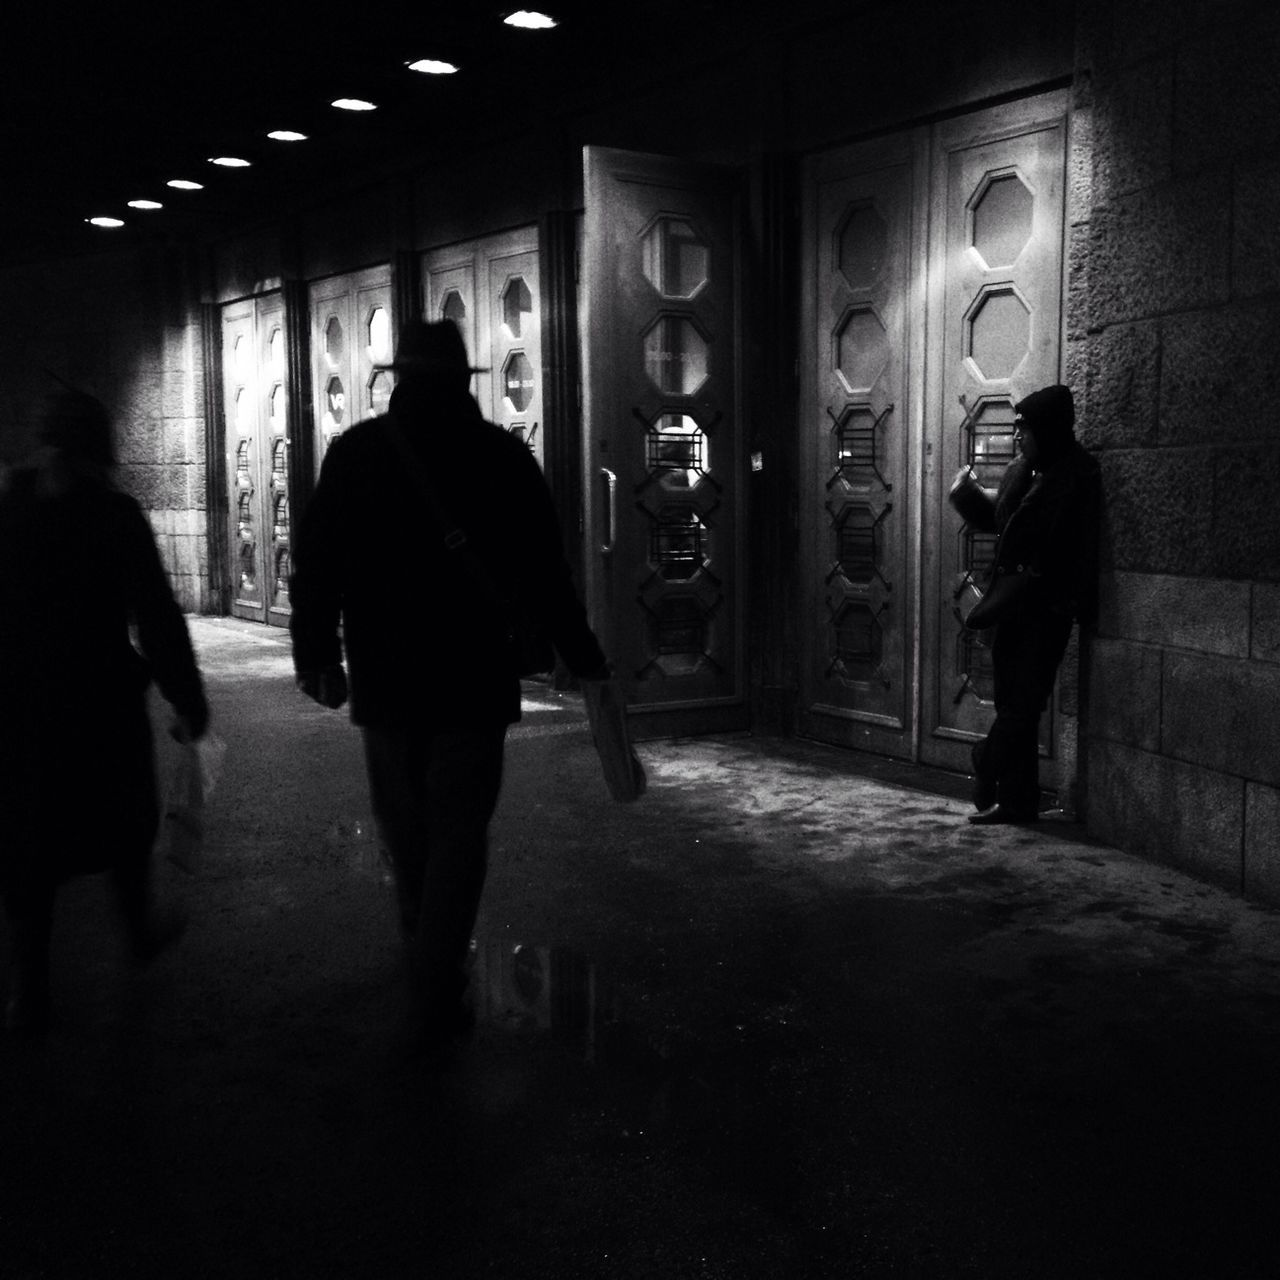 Silhouette People On Street Against Building At Night